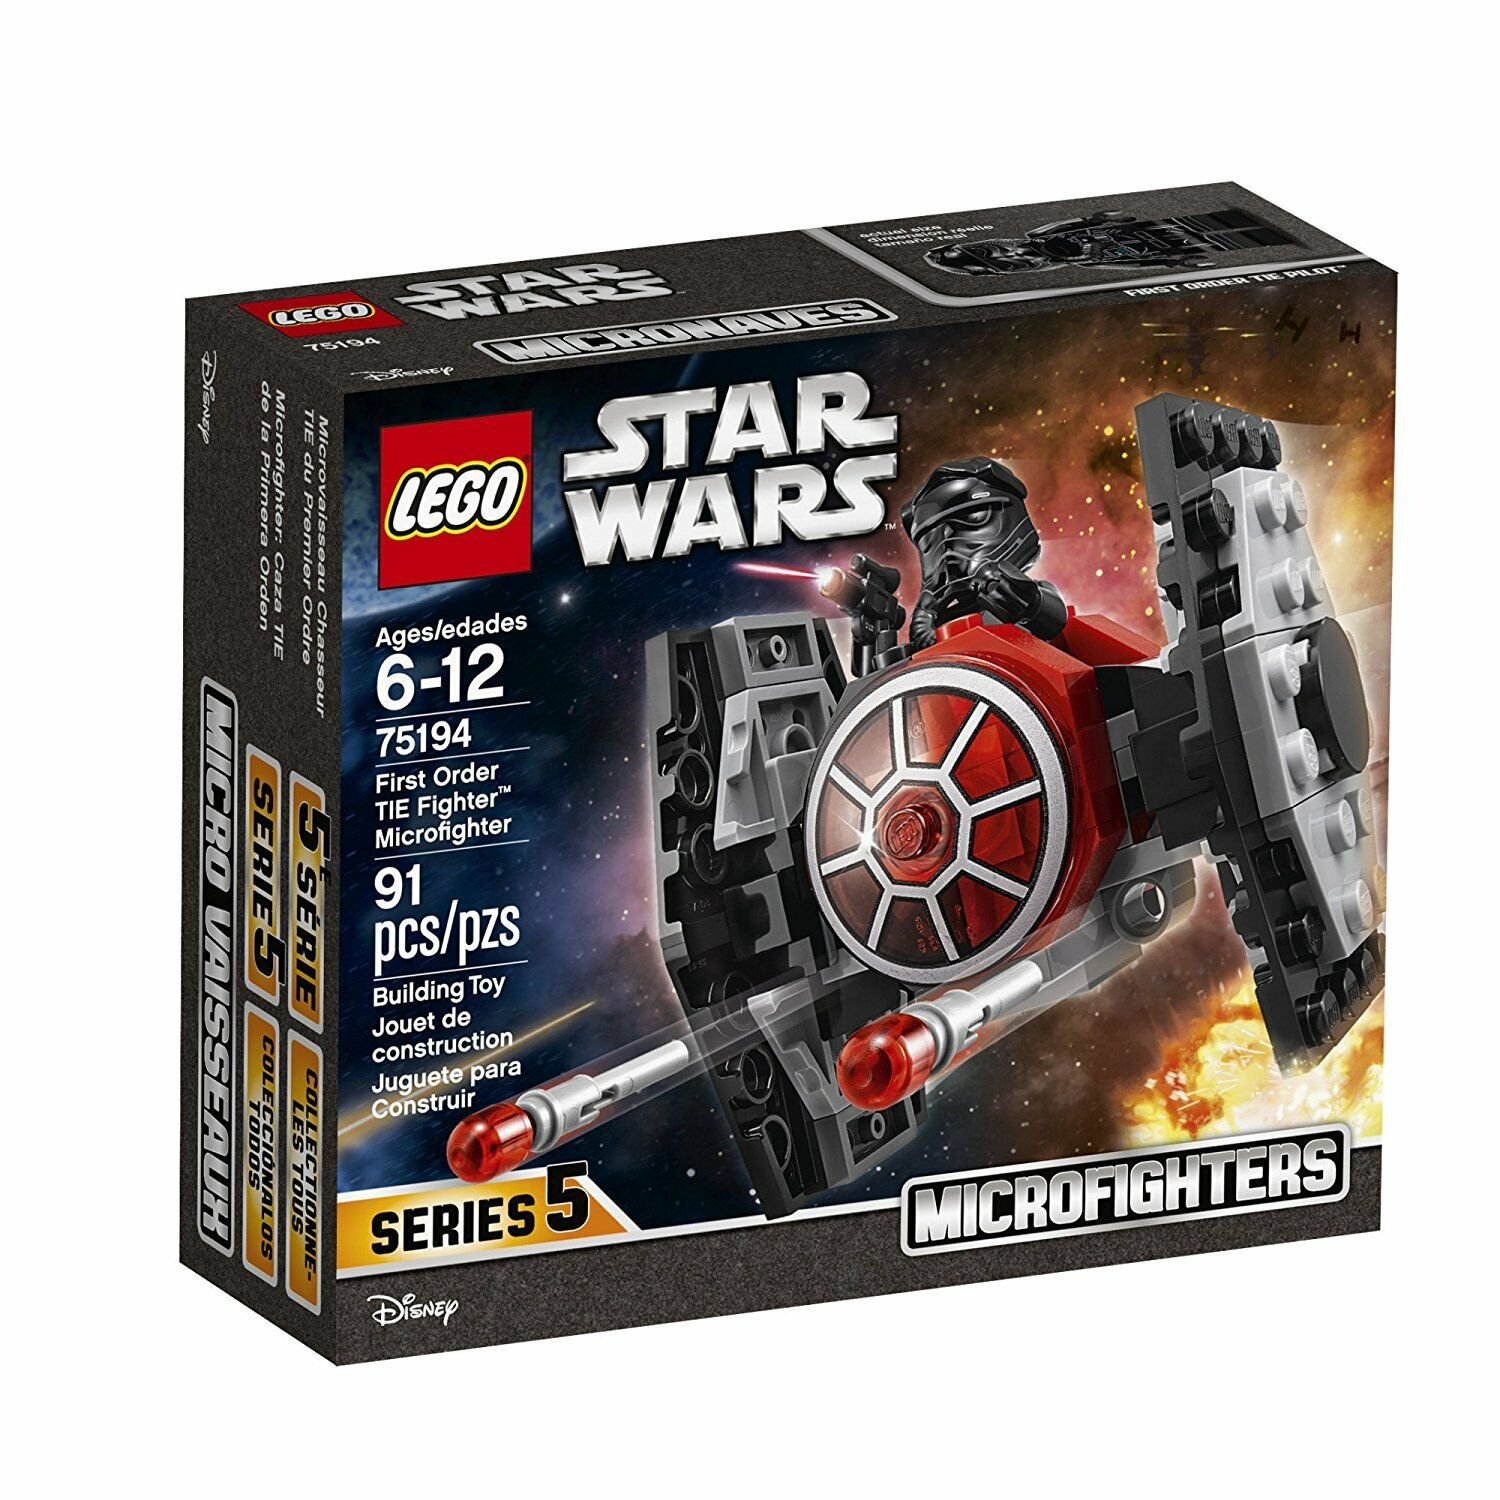 75194 Lego Star Wars First Order TIE Fighter Microfighter Microfighters